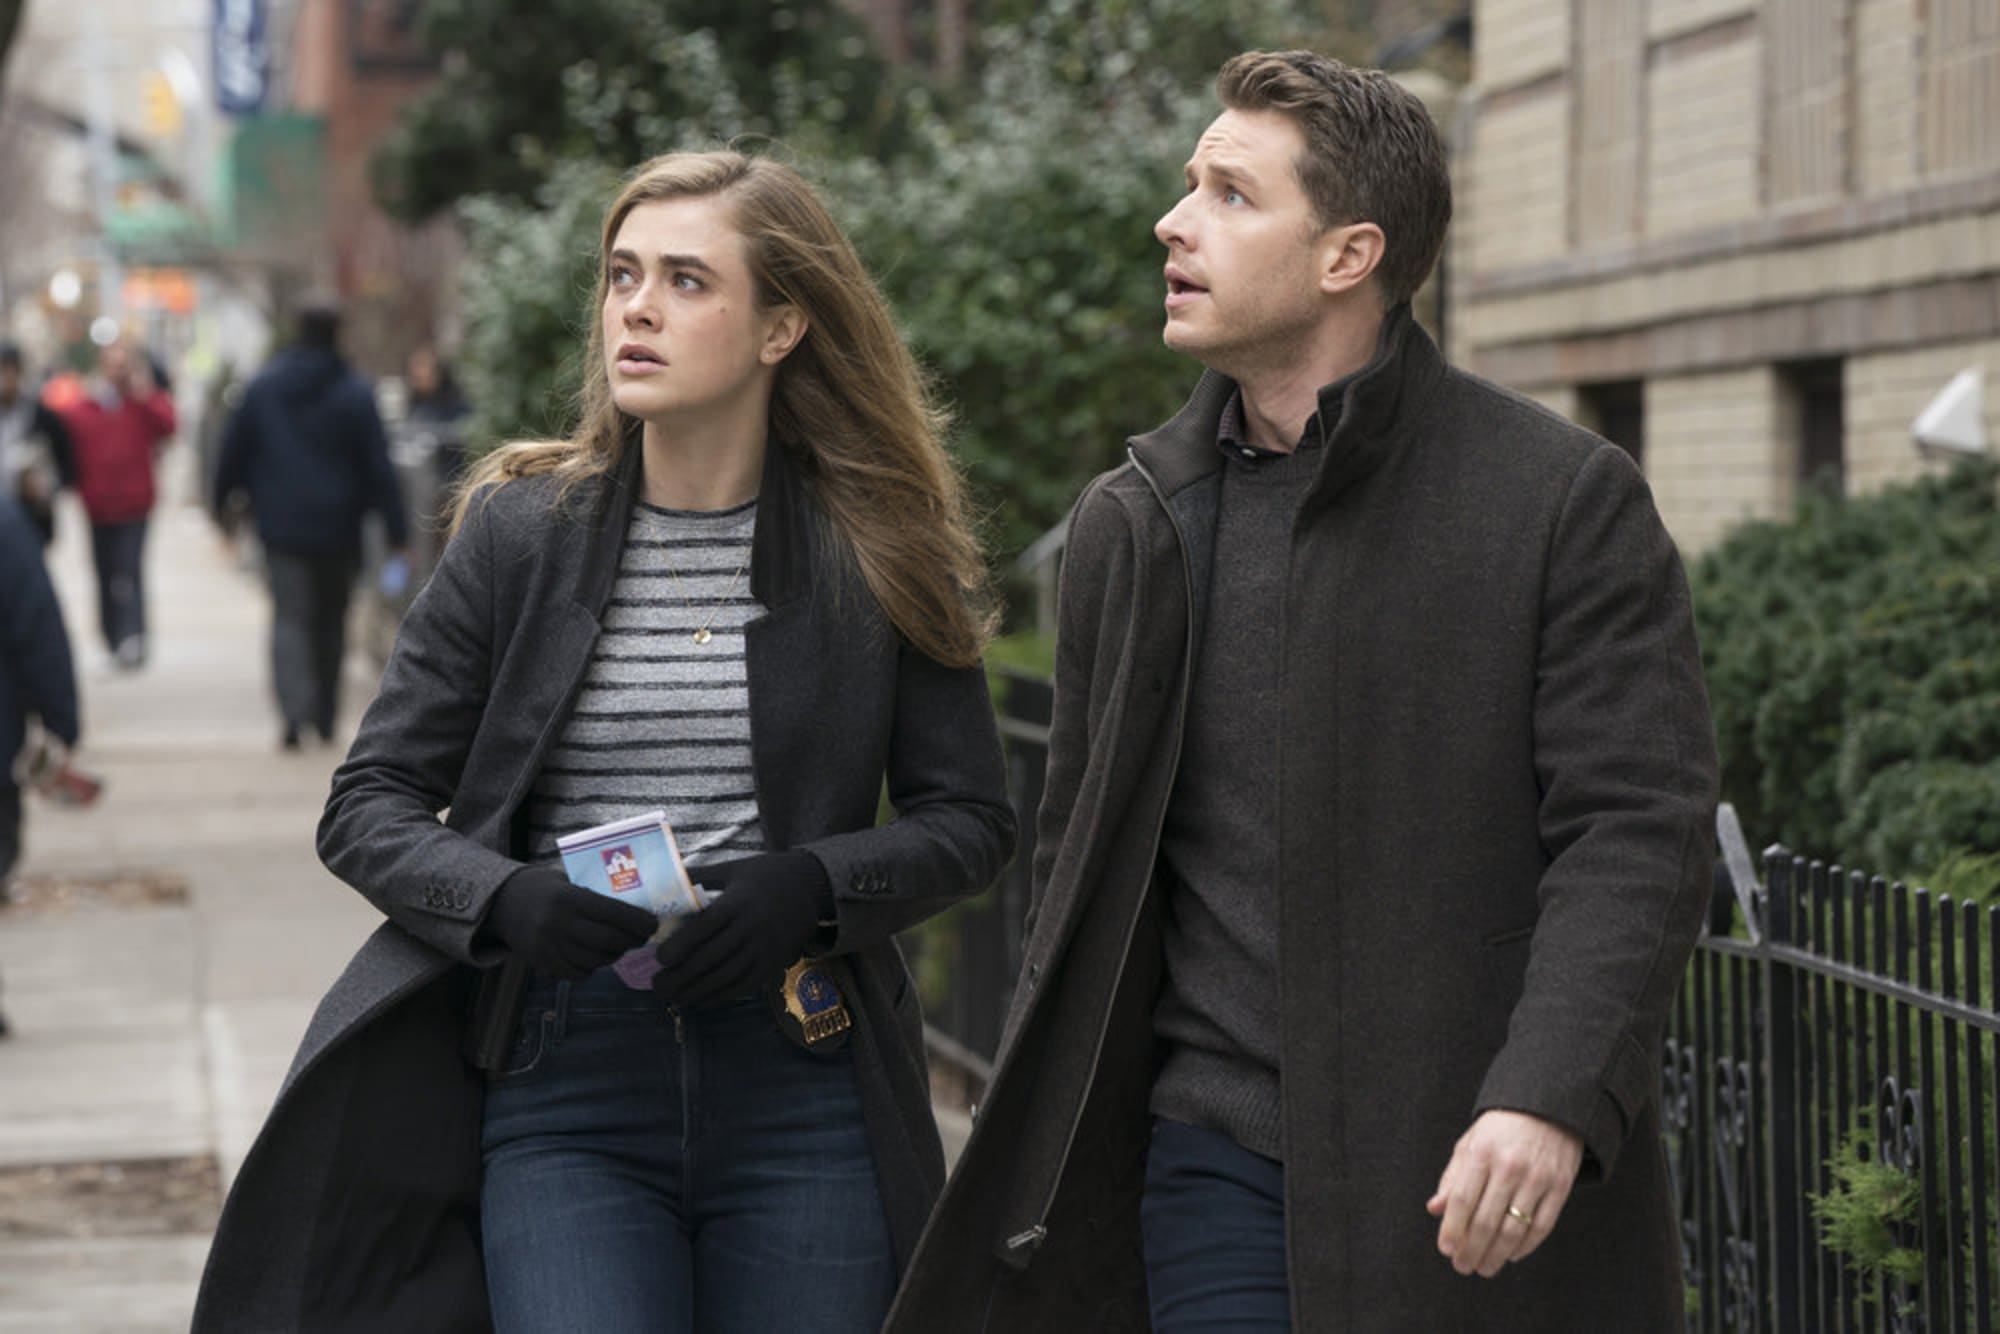 Manifest makes Netflix history as third show to spend 100 days in the top 10